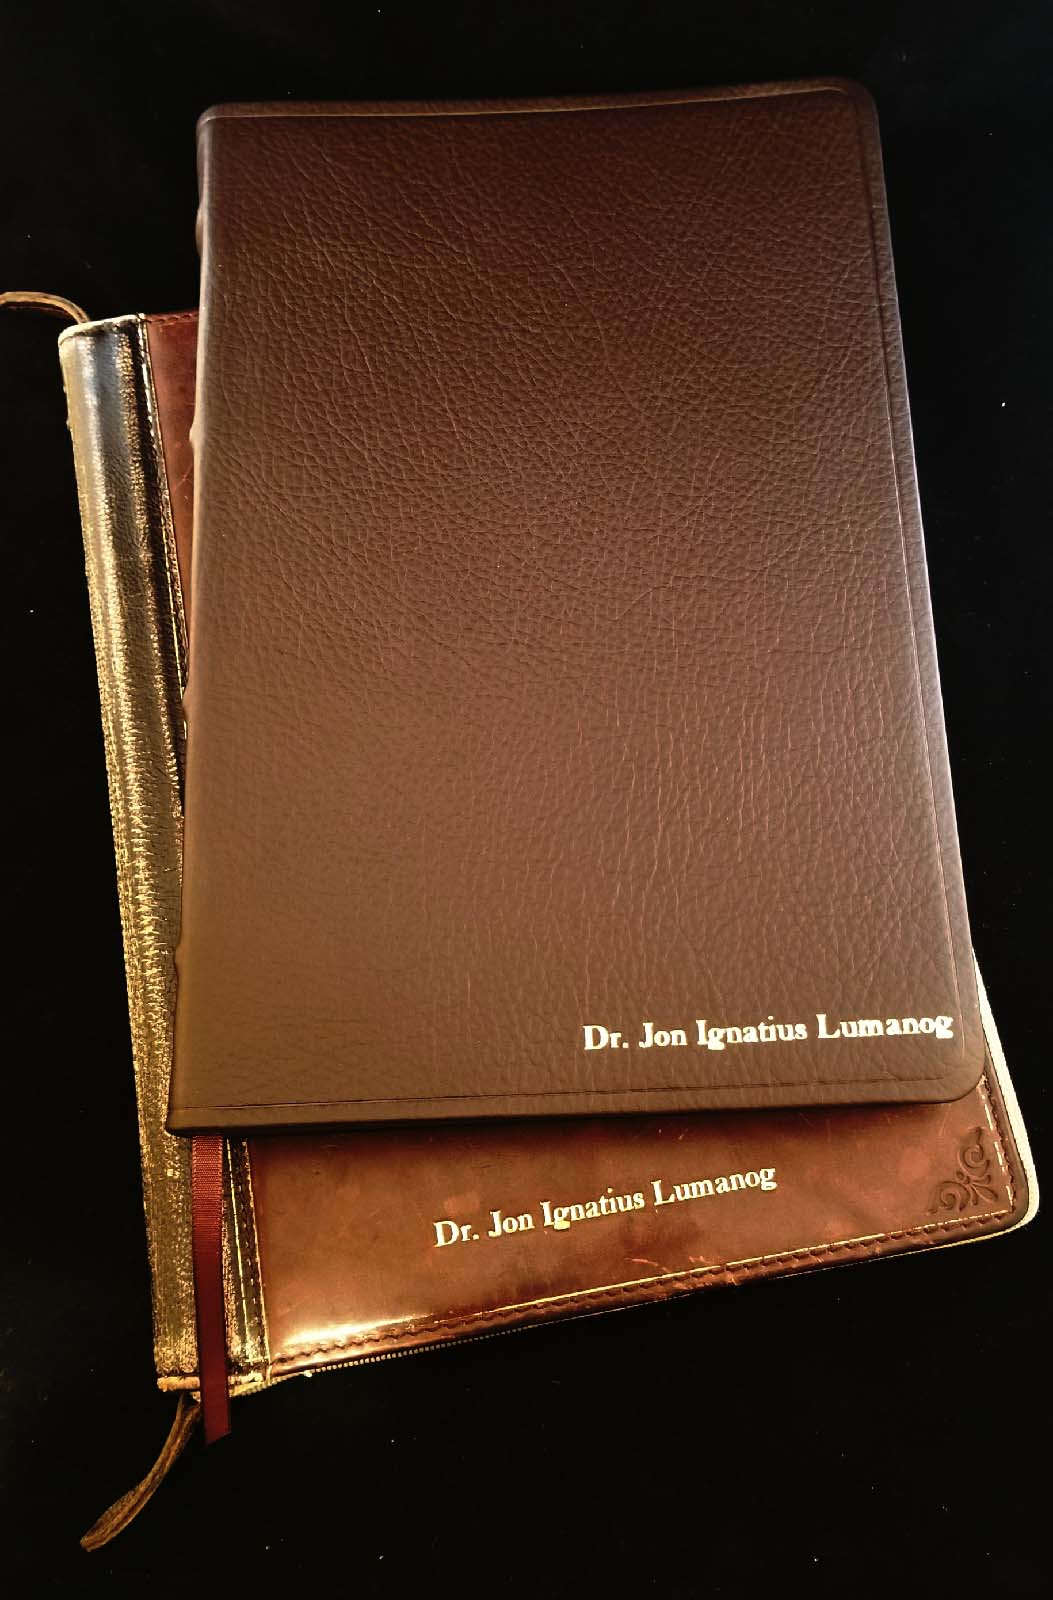 Hot Foil Stamping a Leather iPad Cover and Bible for a Local Clergyman